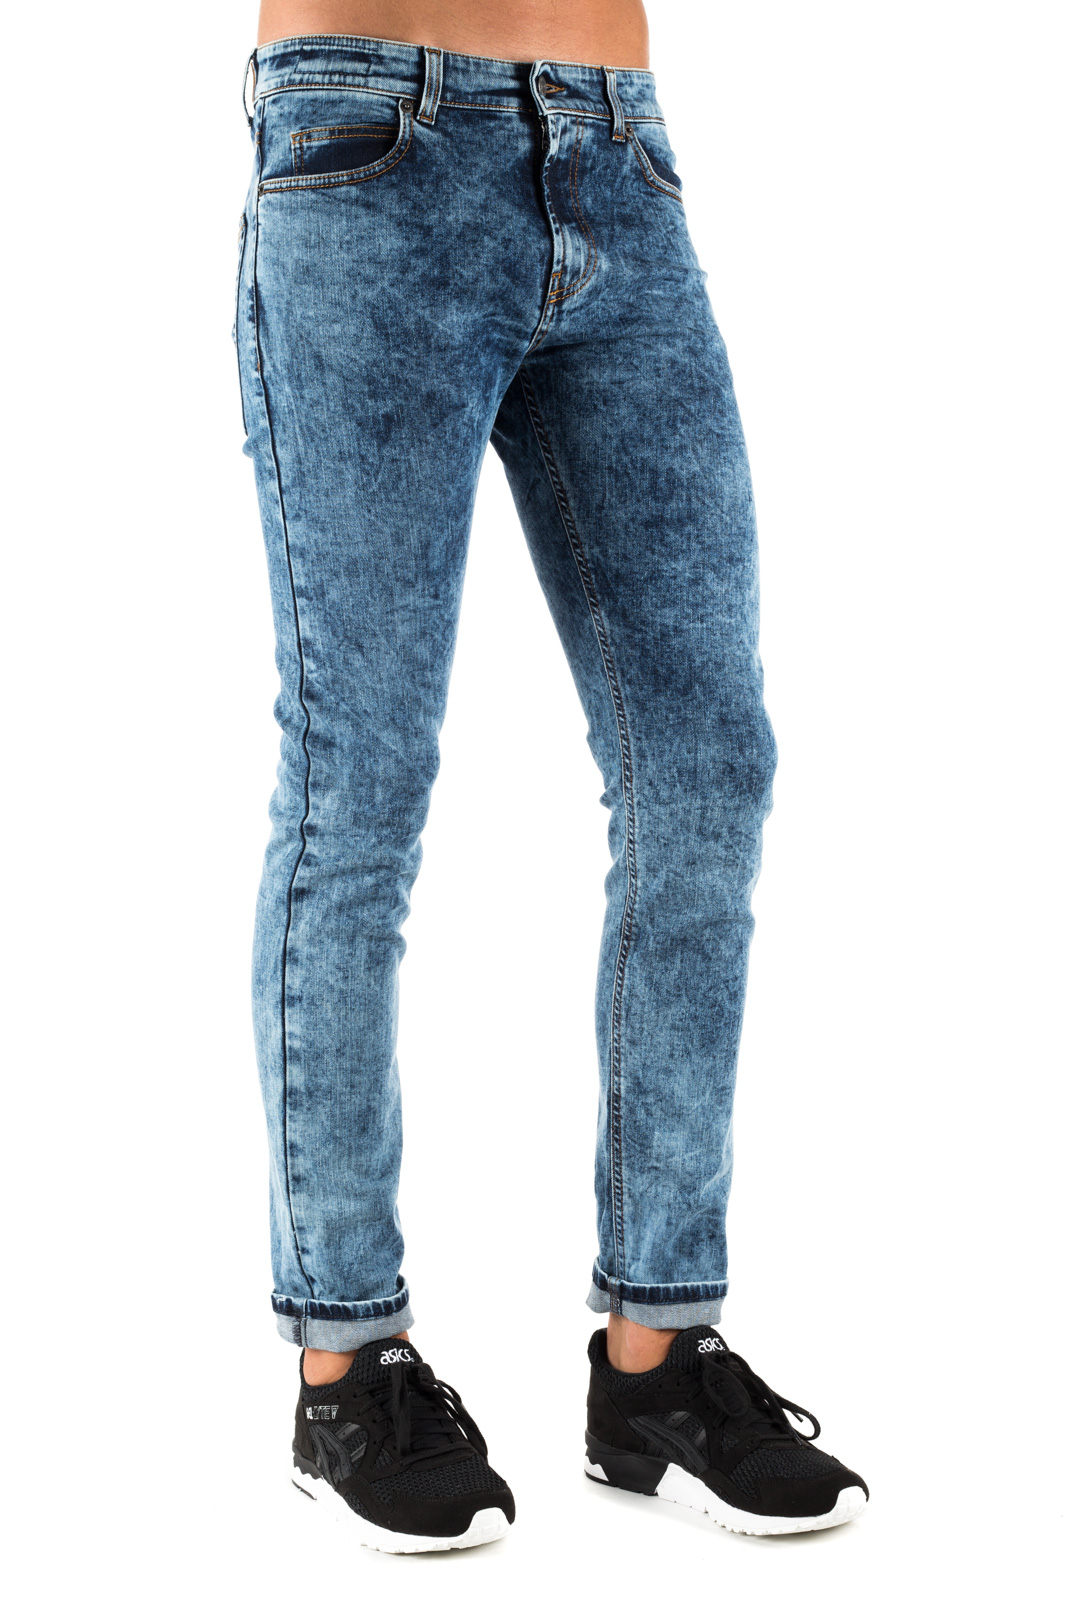 Paura - Javier Washed Skinny Jeans